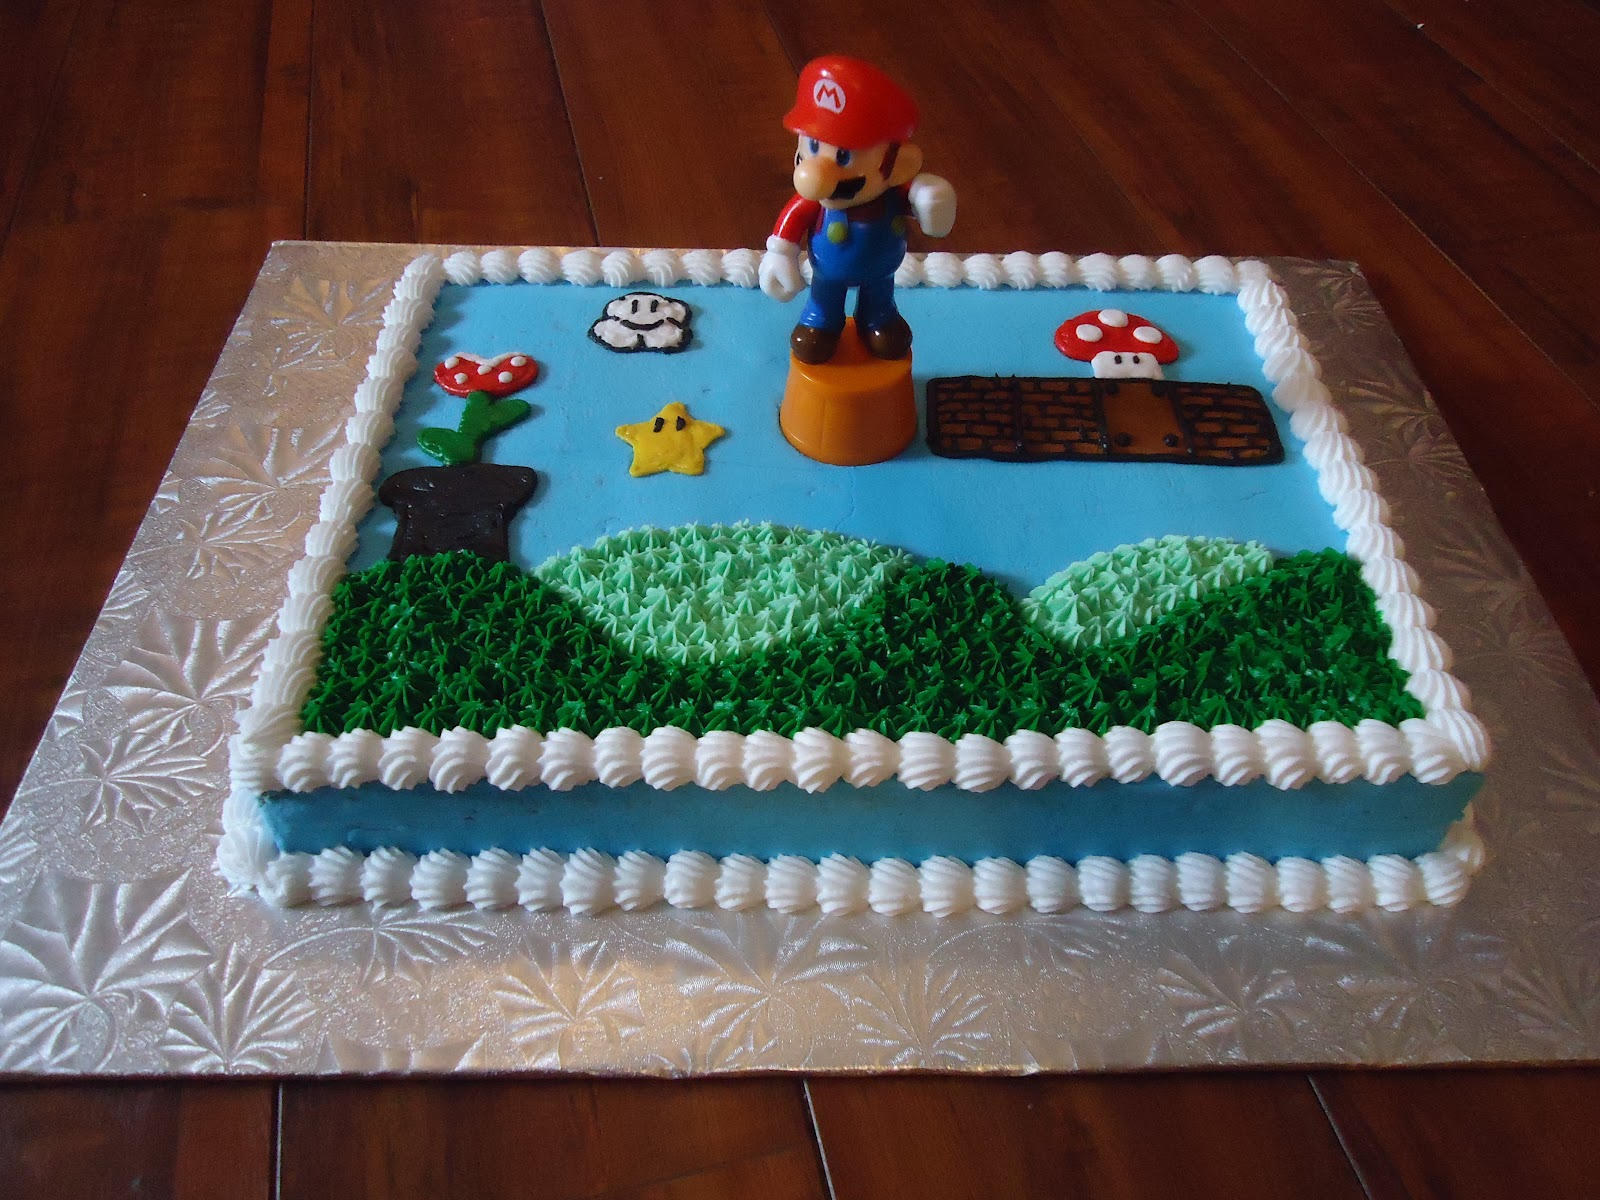 Cake Decoration Sheet : simple Mario sheet cake cake decorating ideas Pinterest